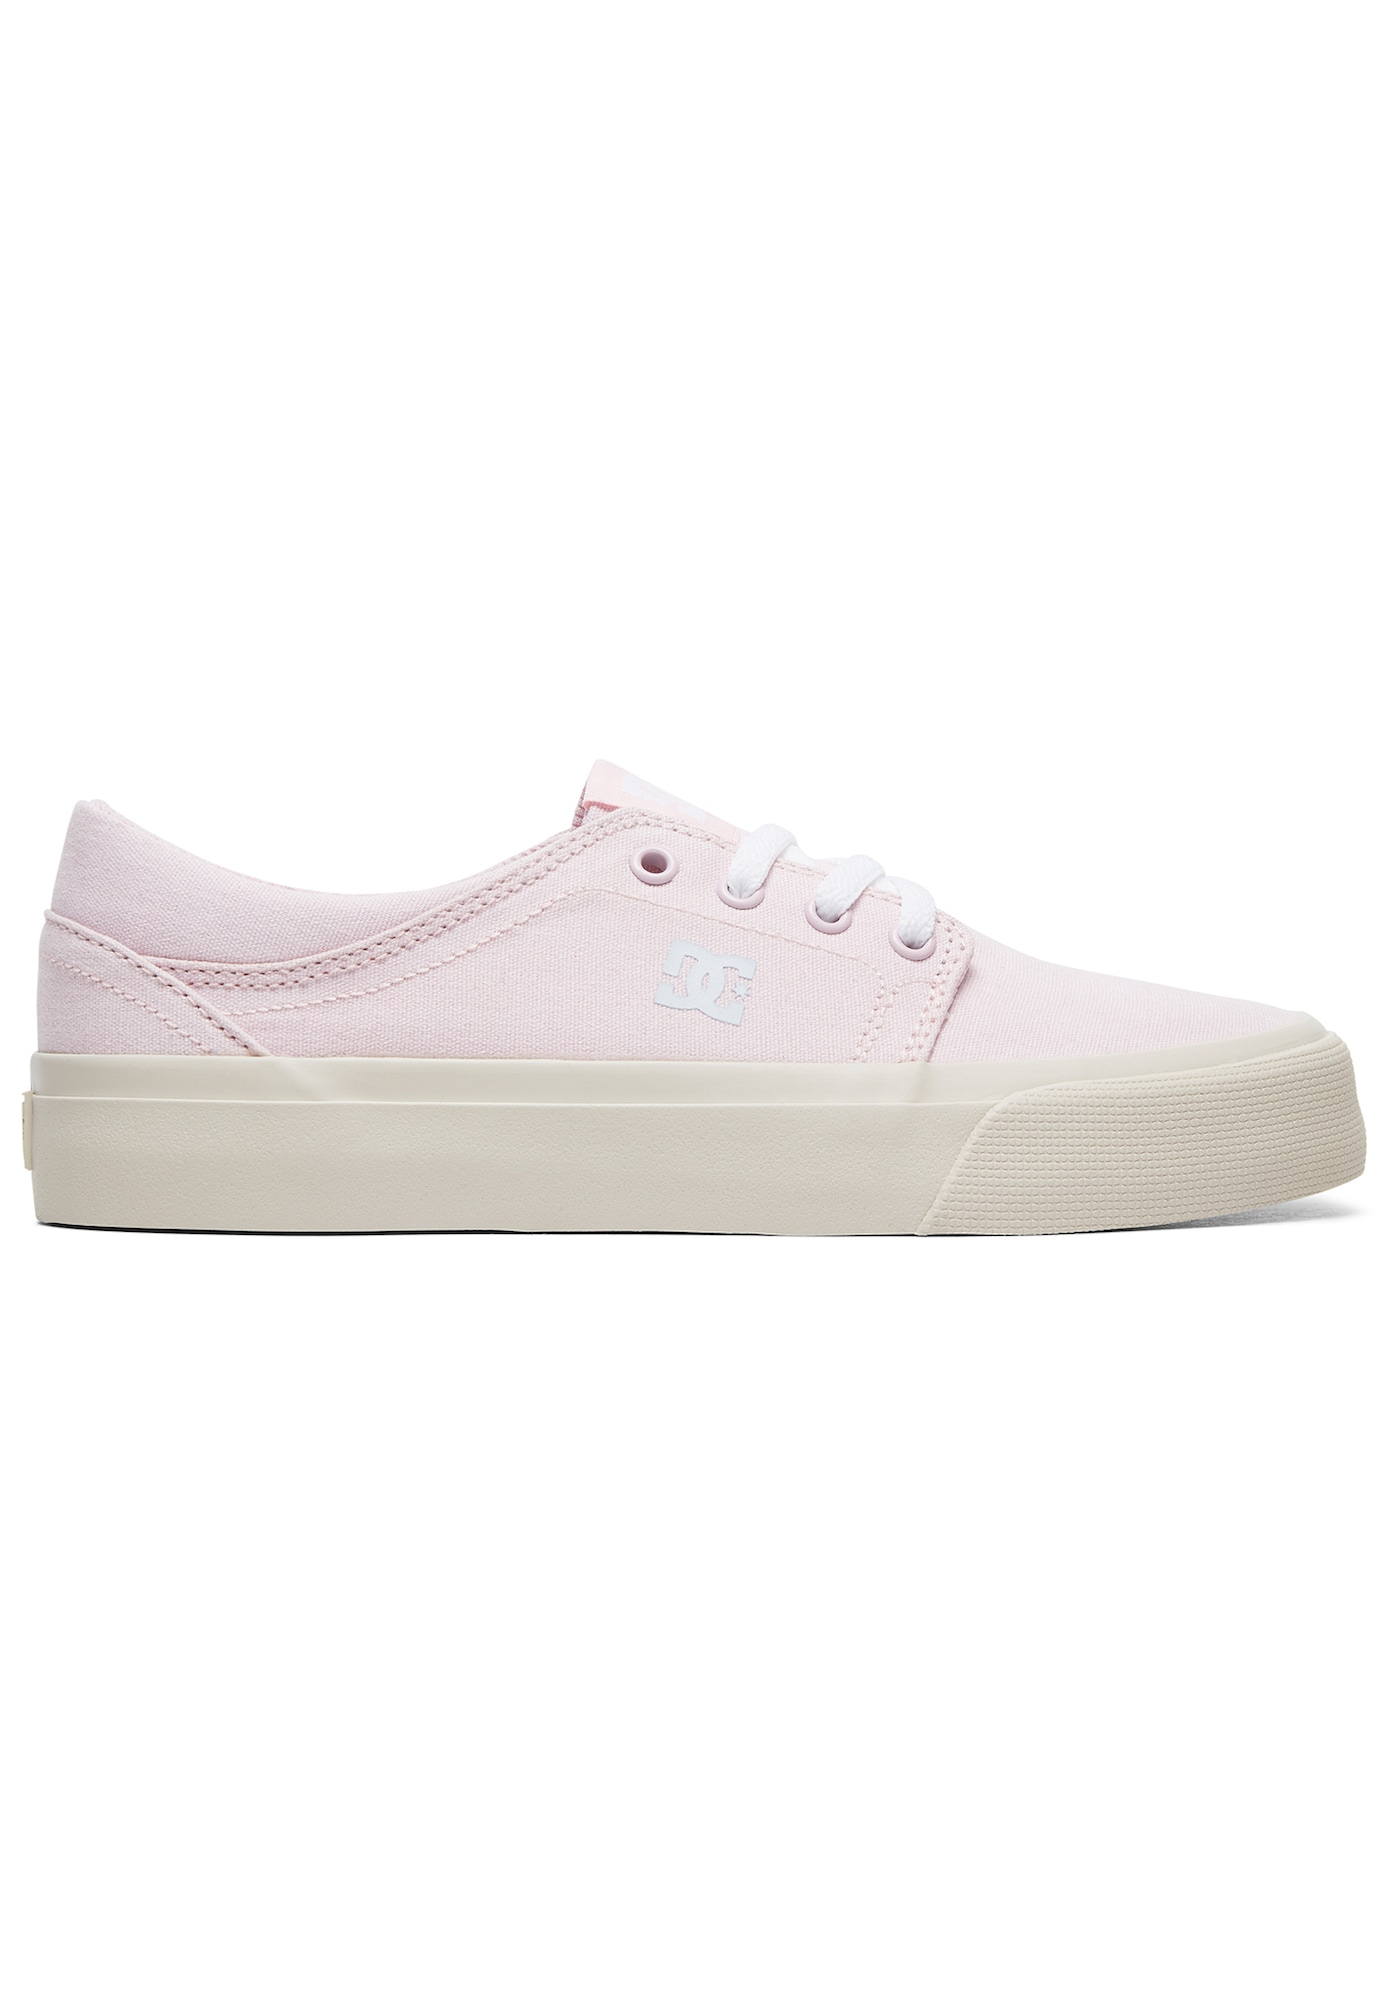 dc shoes - Sneaker 'Trase TX'